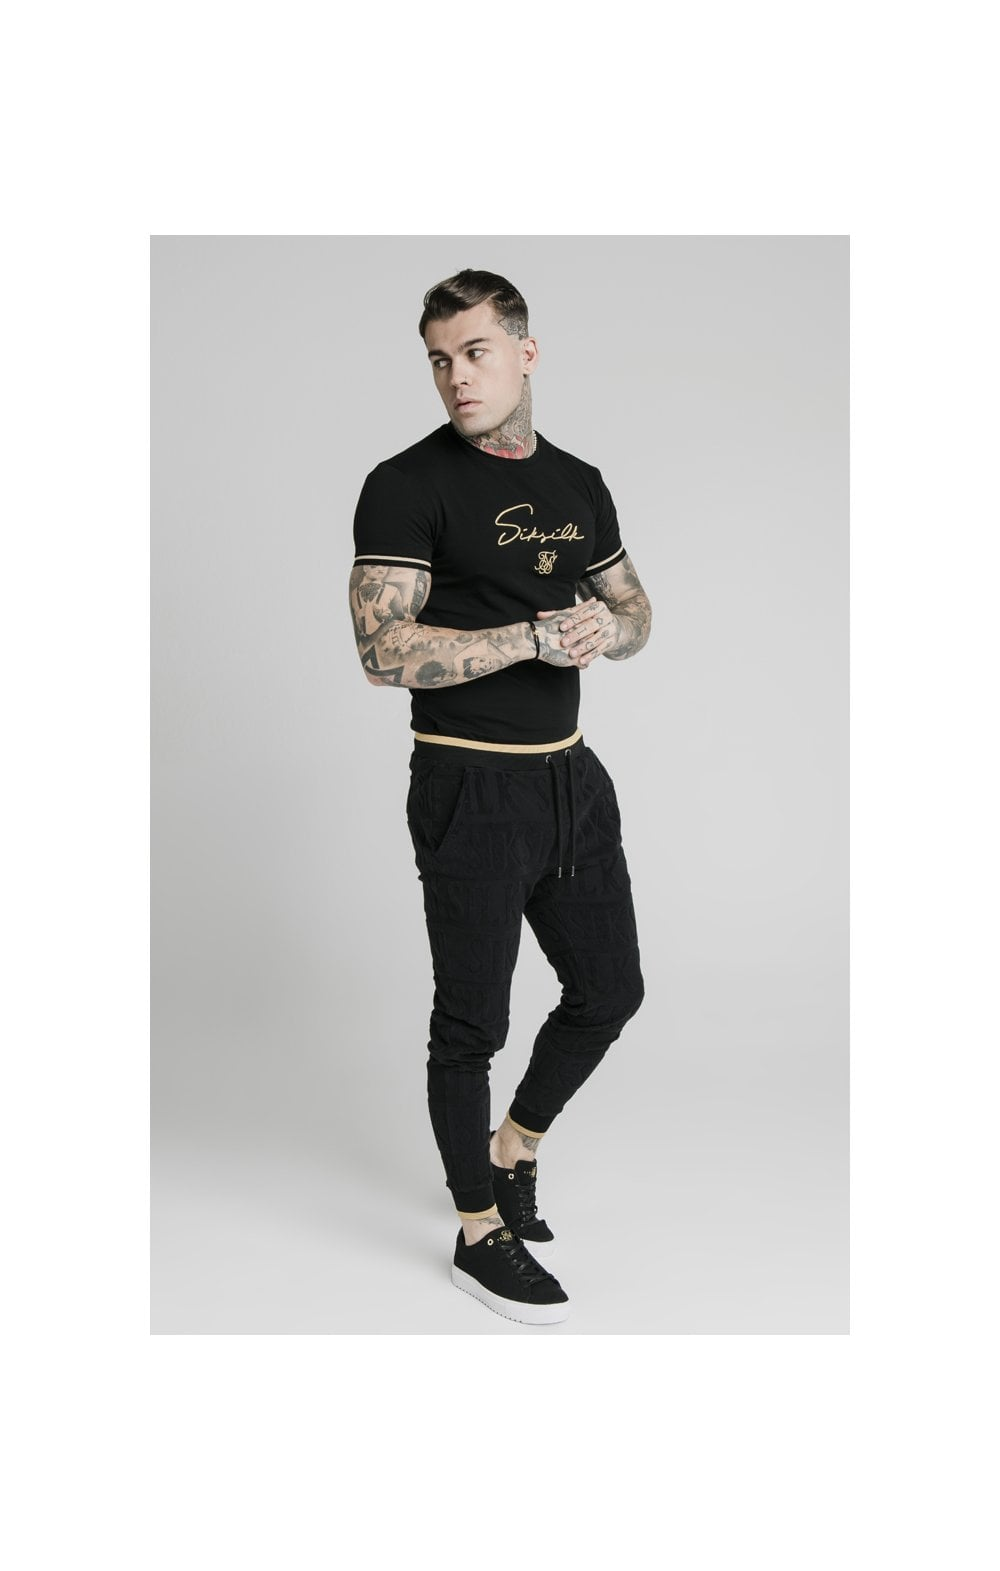 SikSilk Signature Tee - Black & Gold (3)